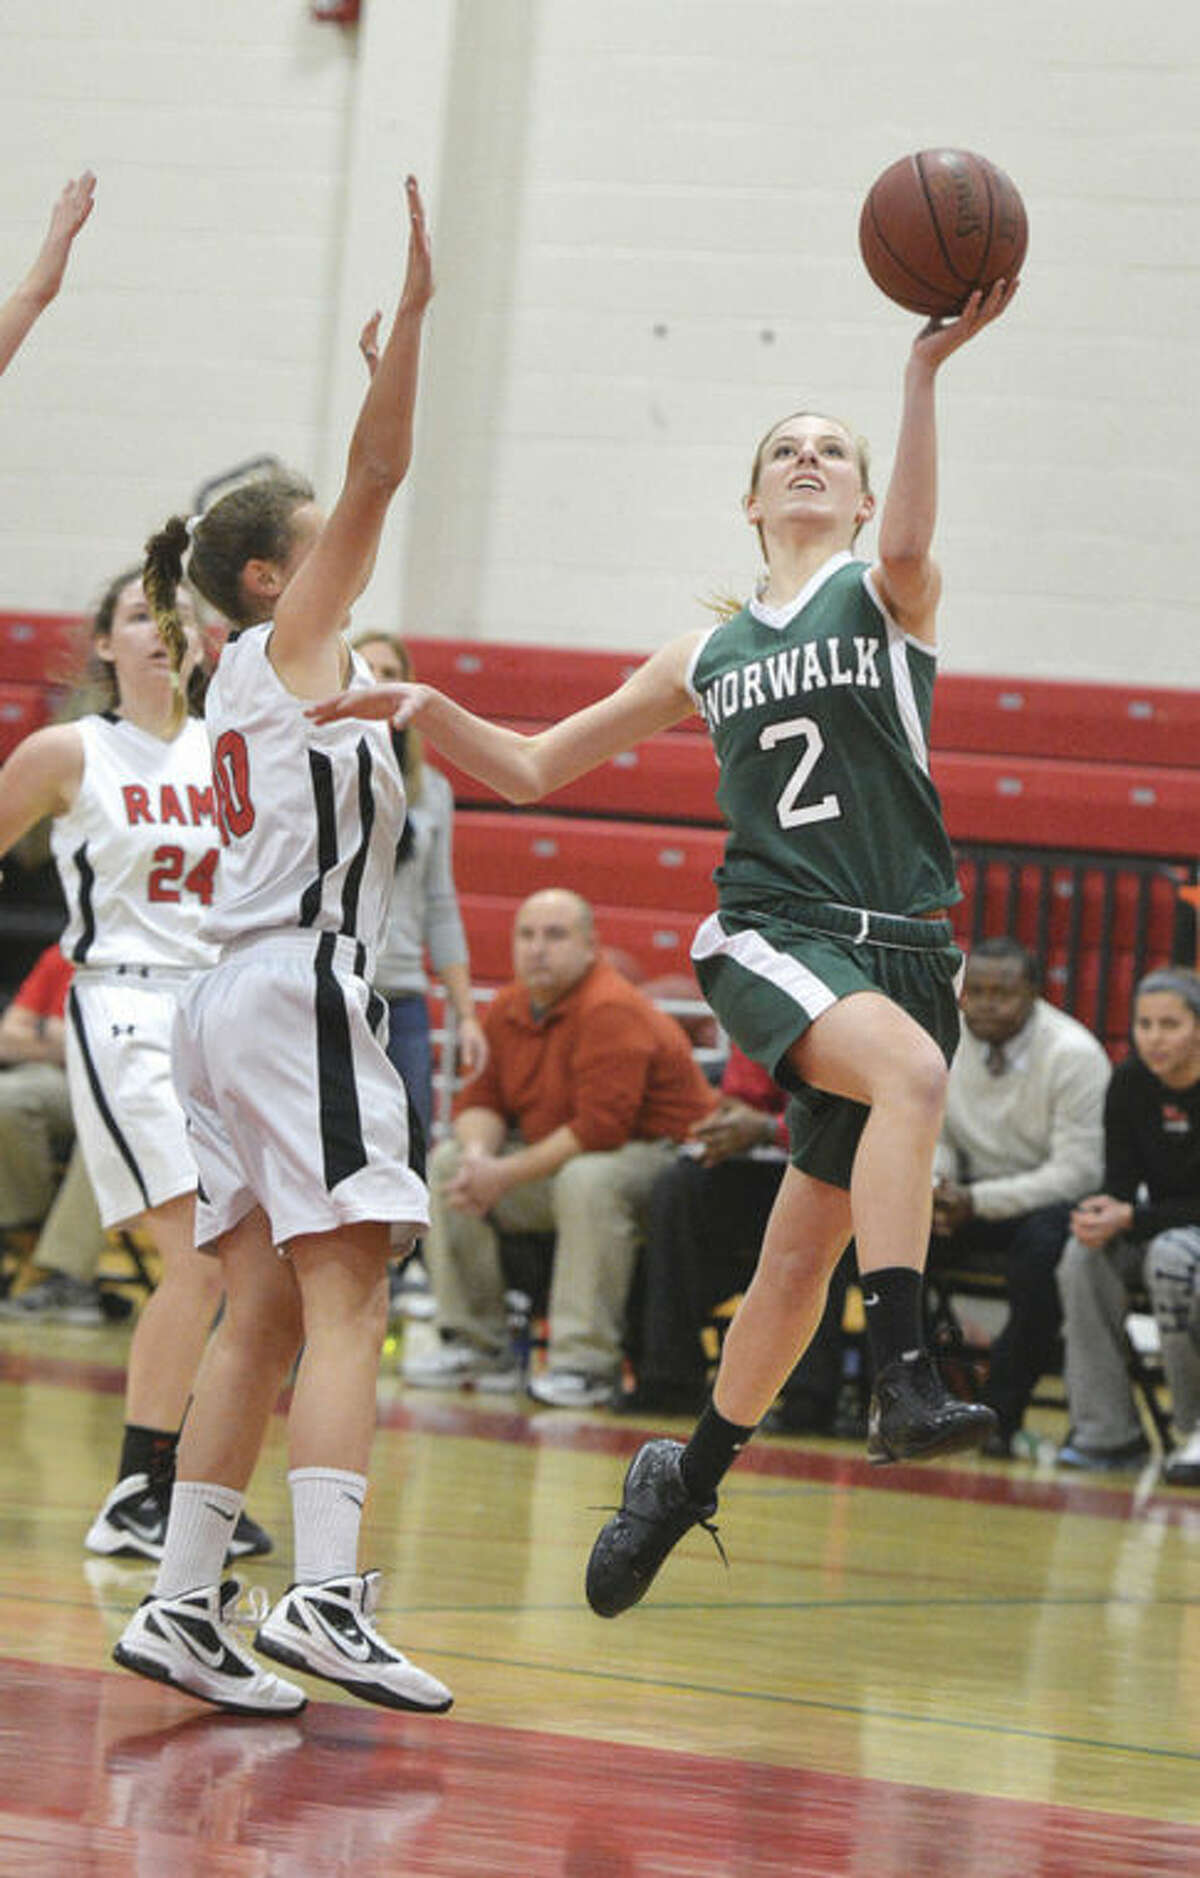 Hour photo/Alex von Kleydorff Norwalk's Amanda Beckwith (2) drives to the hoop during Friday's game against New Canaan at the NCHS gym.